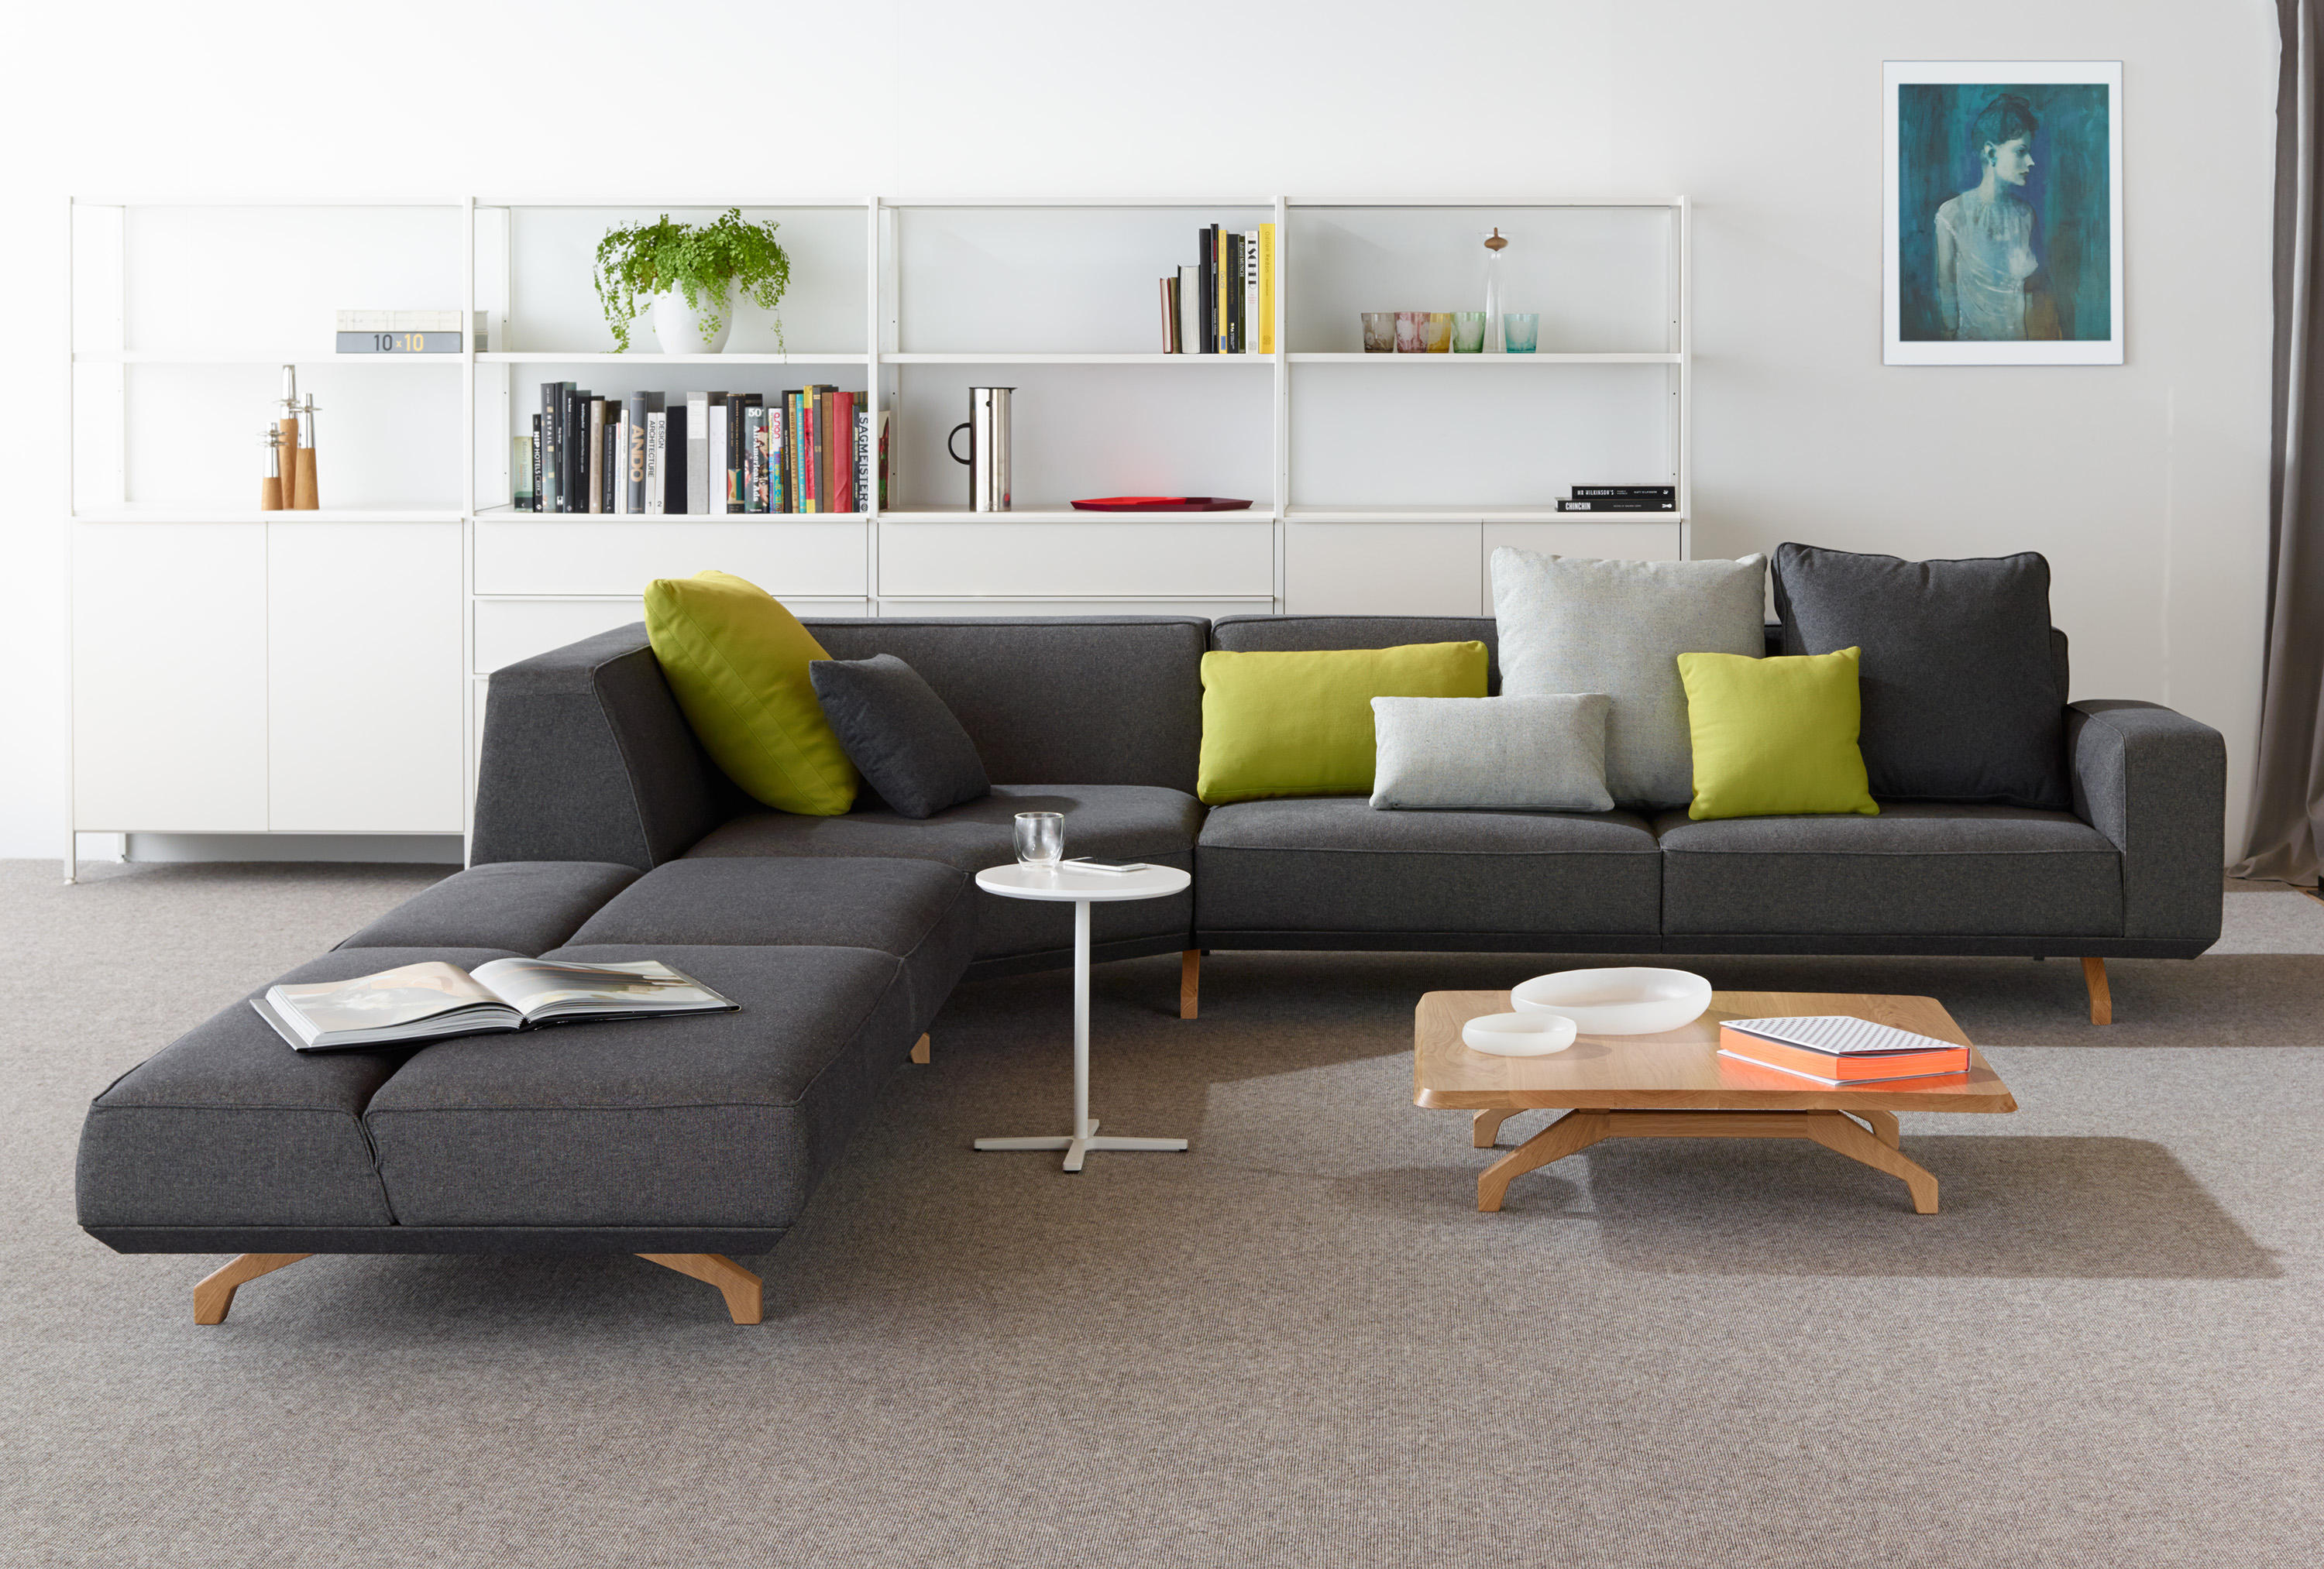 sofa gallery pty ltd large beds everyday use bomba lounge sofas from schiavello international